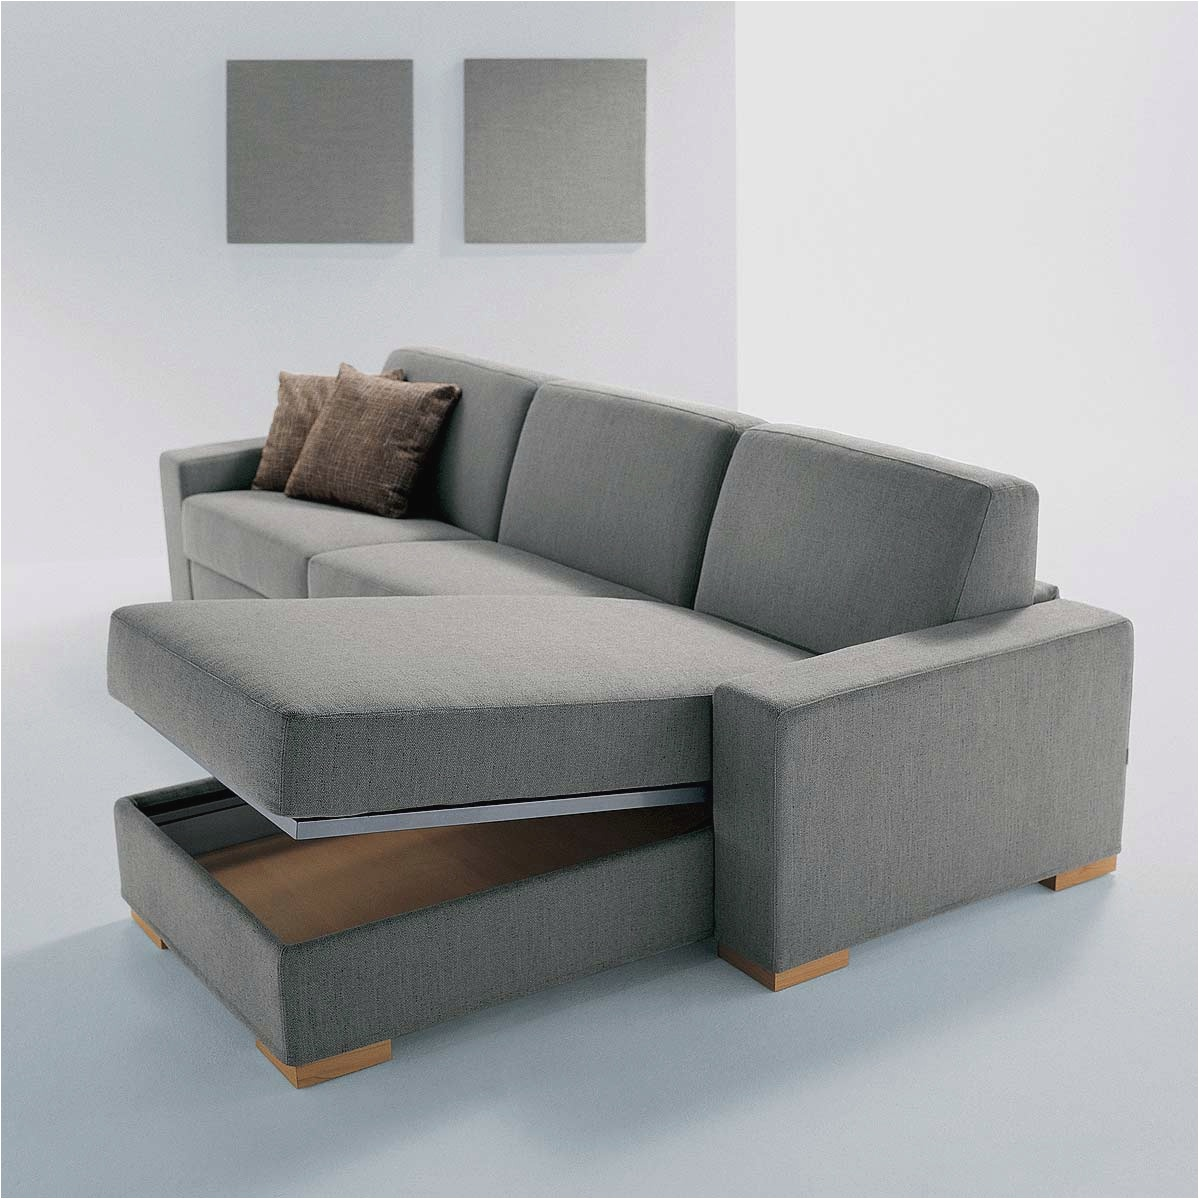 Image of: Sleeper Convertible Sofa Bed with Storage